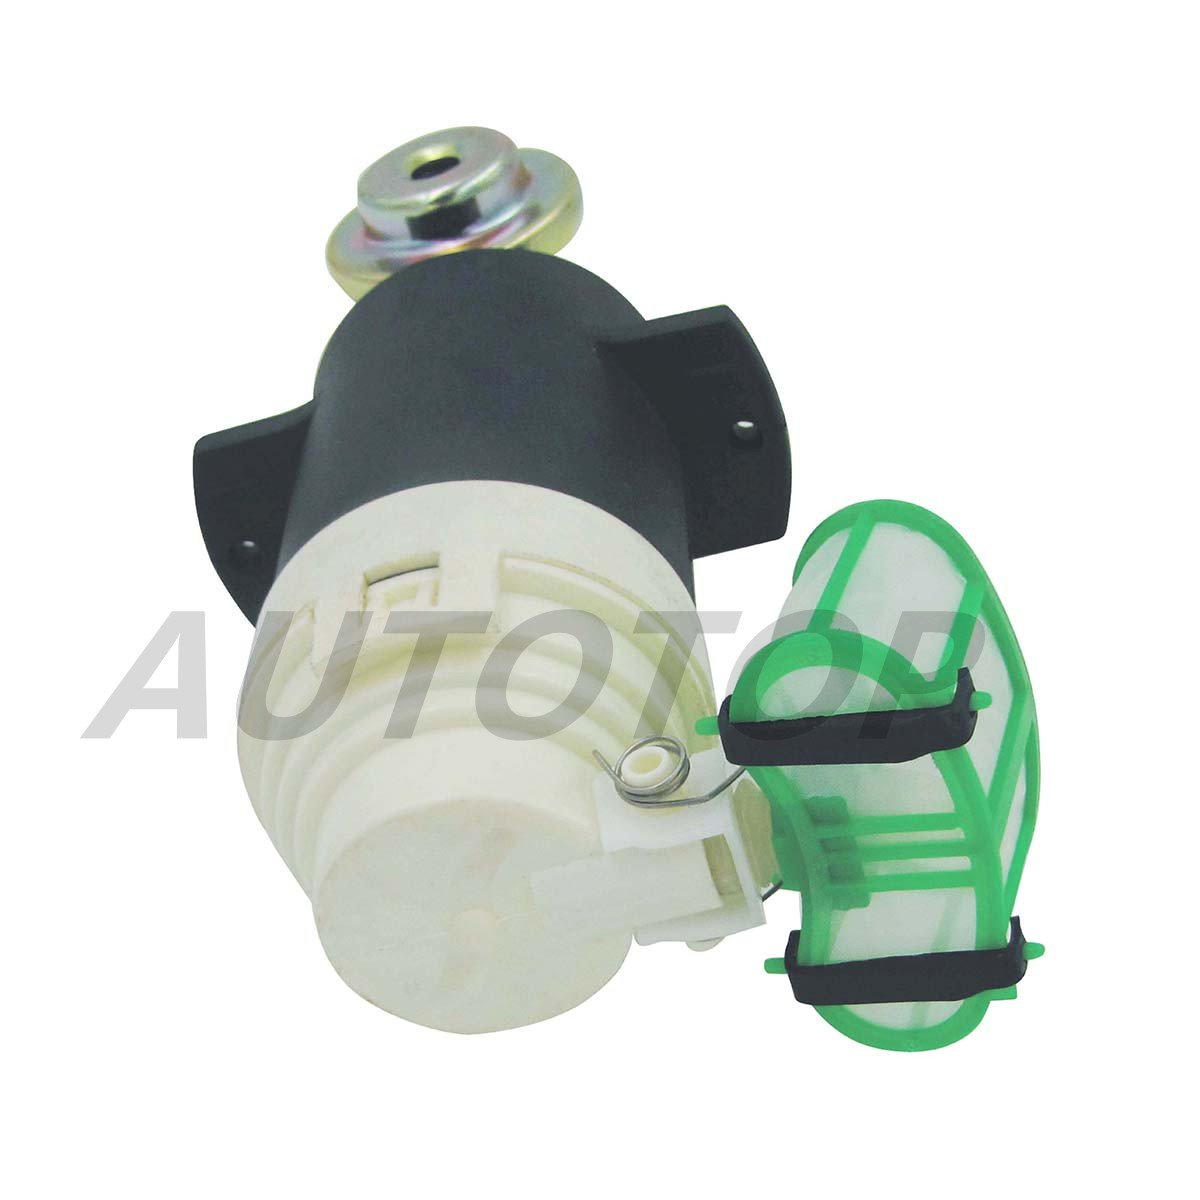 Autotop New Electric Intank Fuel Pump Fit 86 94 Nissan 1988 D21 Pickup Filter 95 96 E8376 1705001g08 1704059g24 1704059g15 Automotive